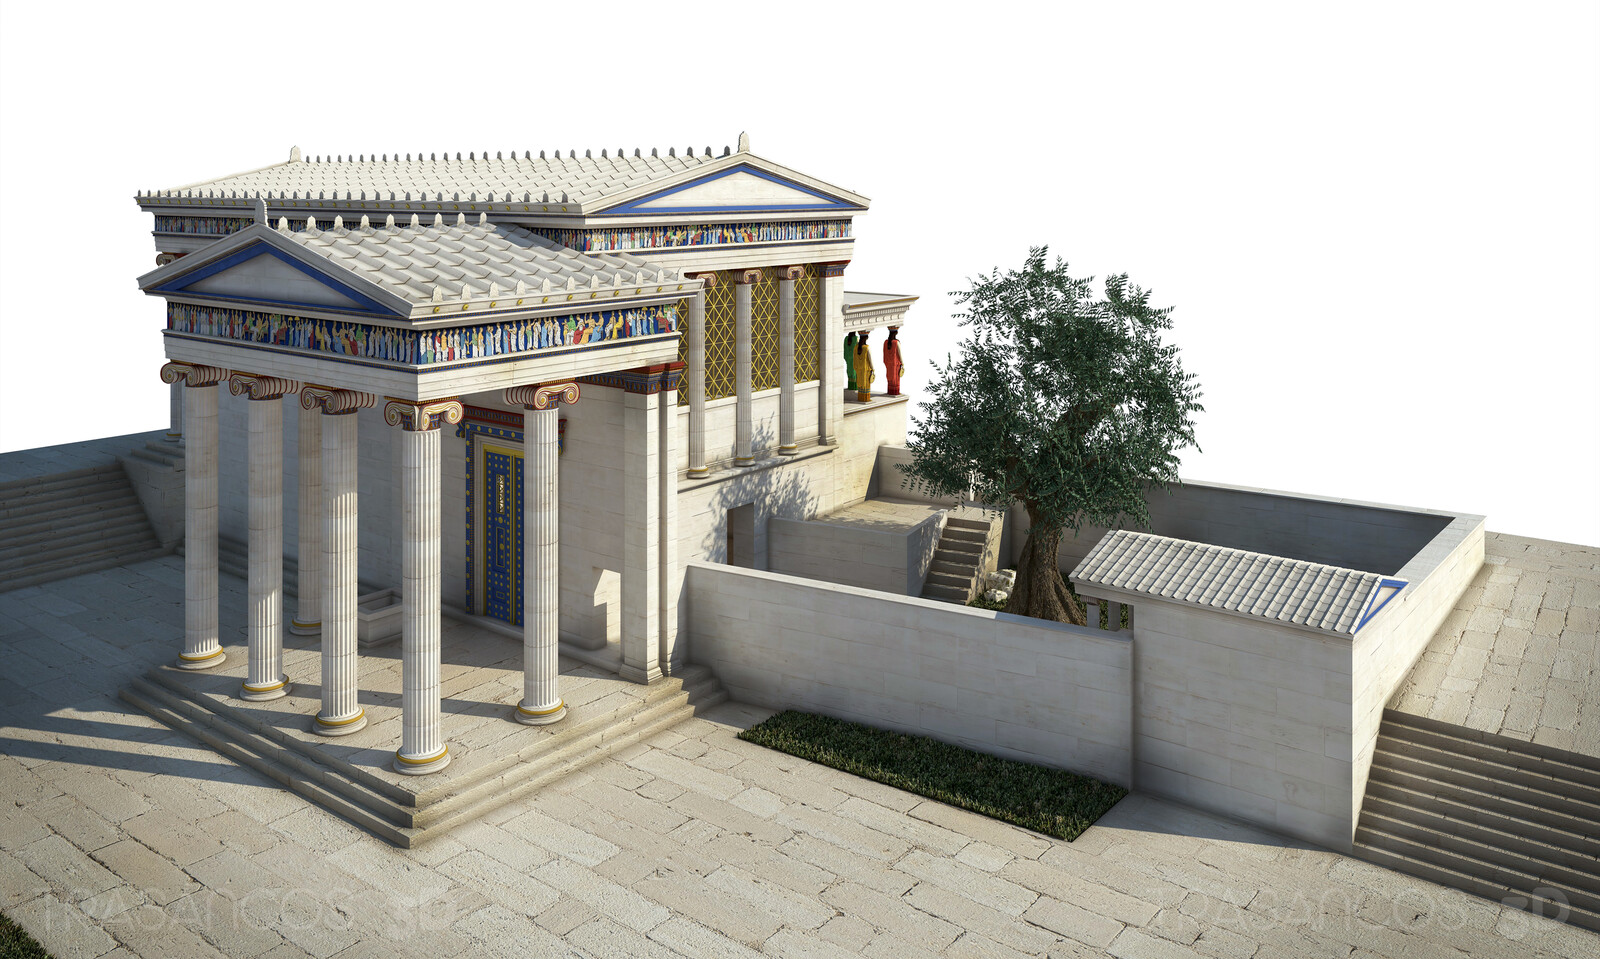 Reconstruction of the Erectheion in Athens. Modeled in collaboration with: - Diego Blanco